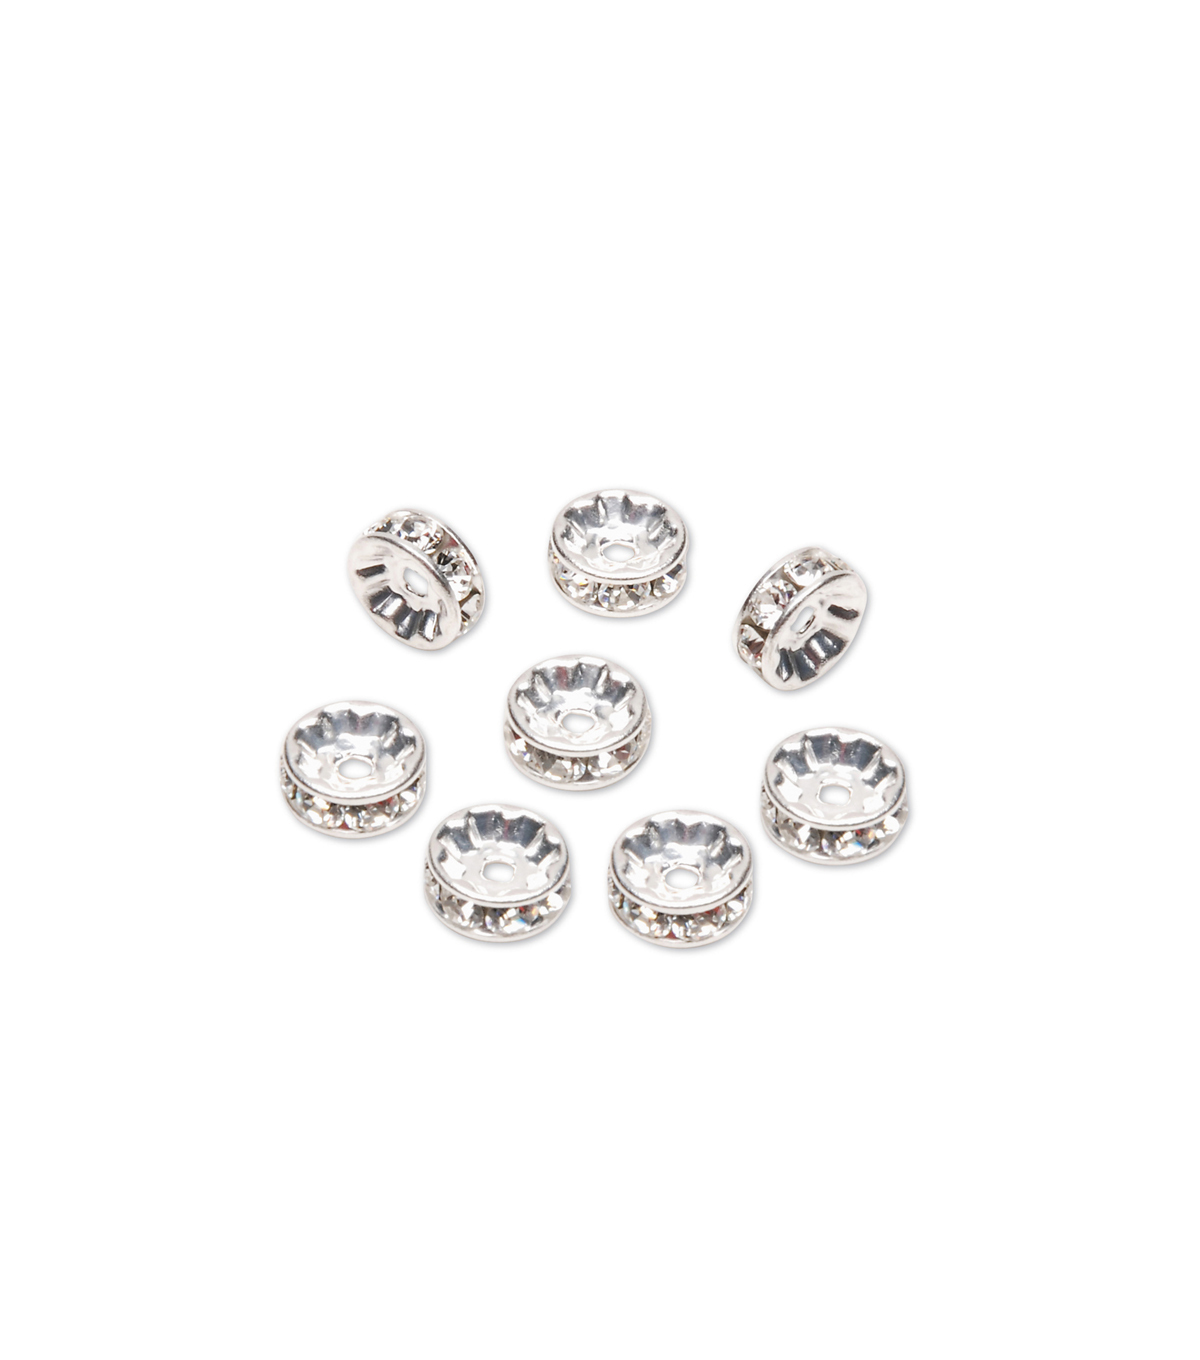 Swarovski Rondelle Spacers w/Crystal, Sterling Silver Plated, 6mm, 8pc/pkg